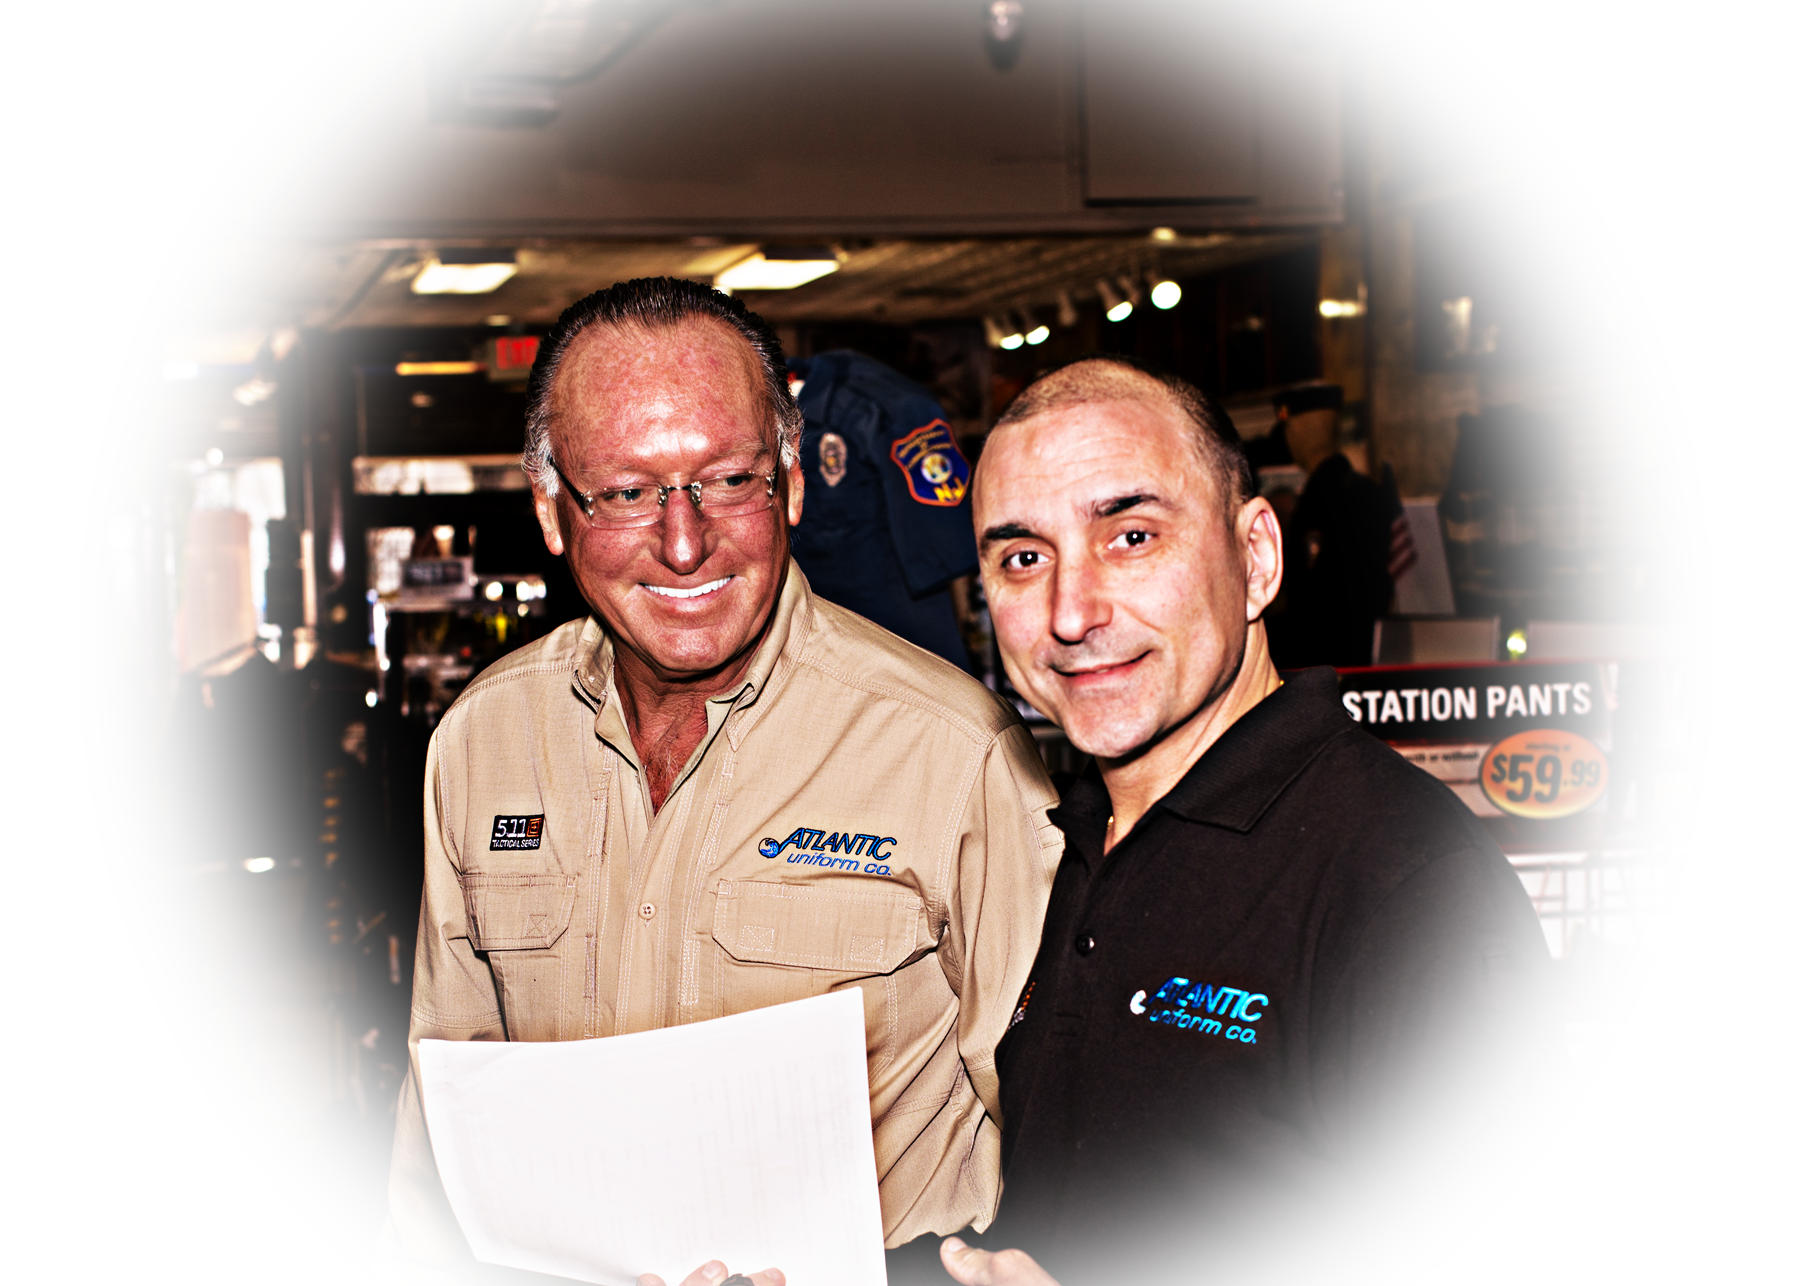 Two Product Specialists from Atlantic Uniform